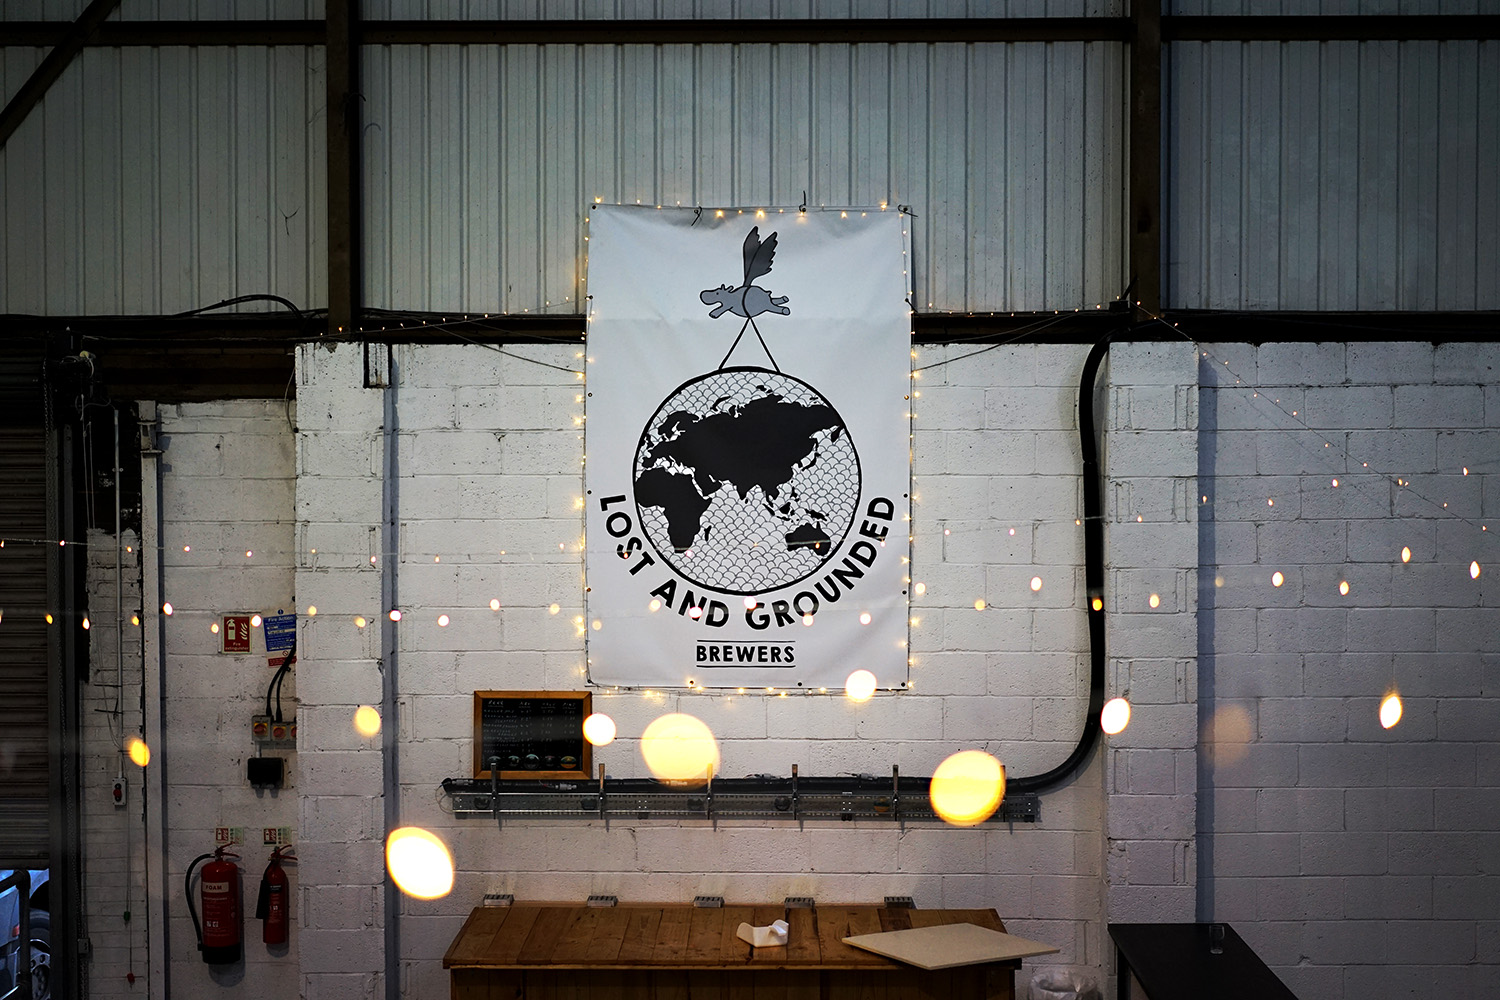 Lost and Grounded Brewery Interior 14.jpg